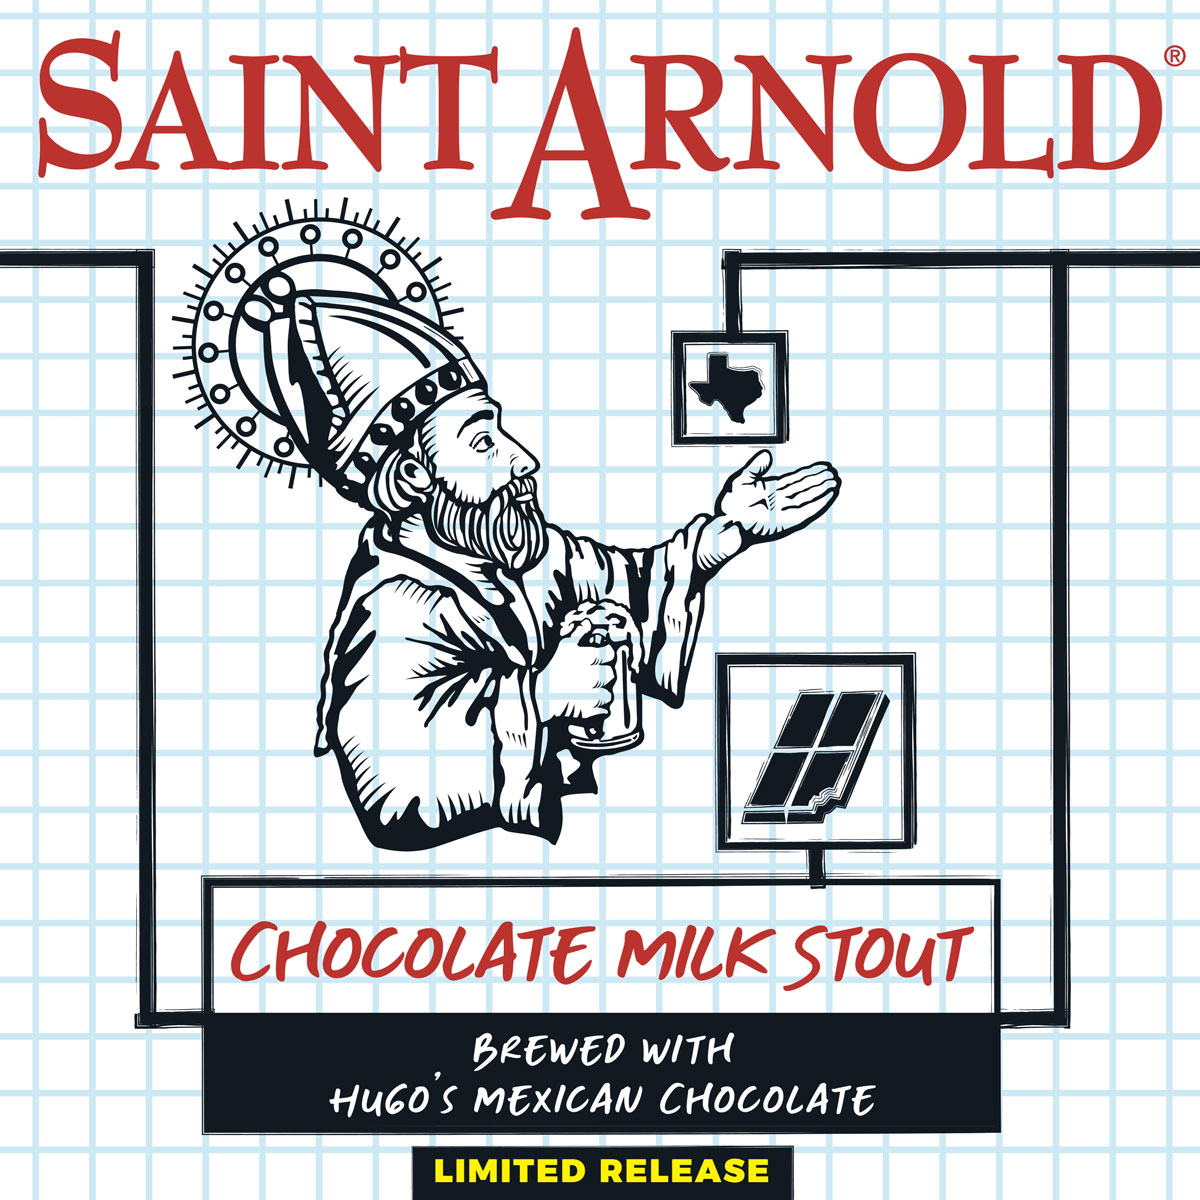 brand_image_limited_release_chocolate_milk_stout